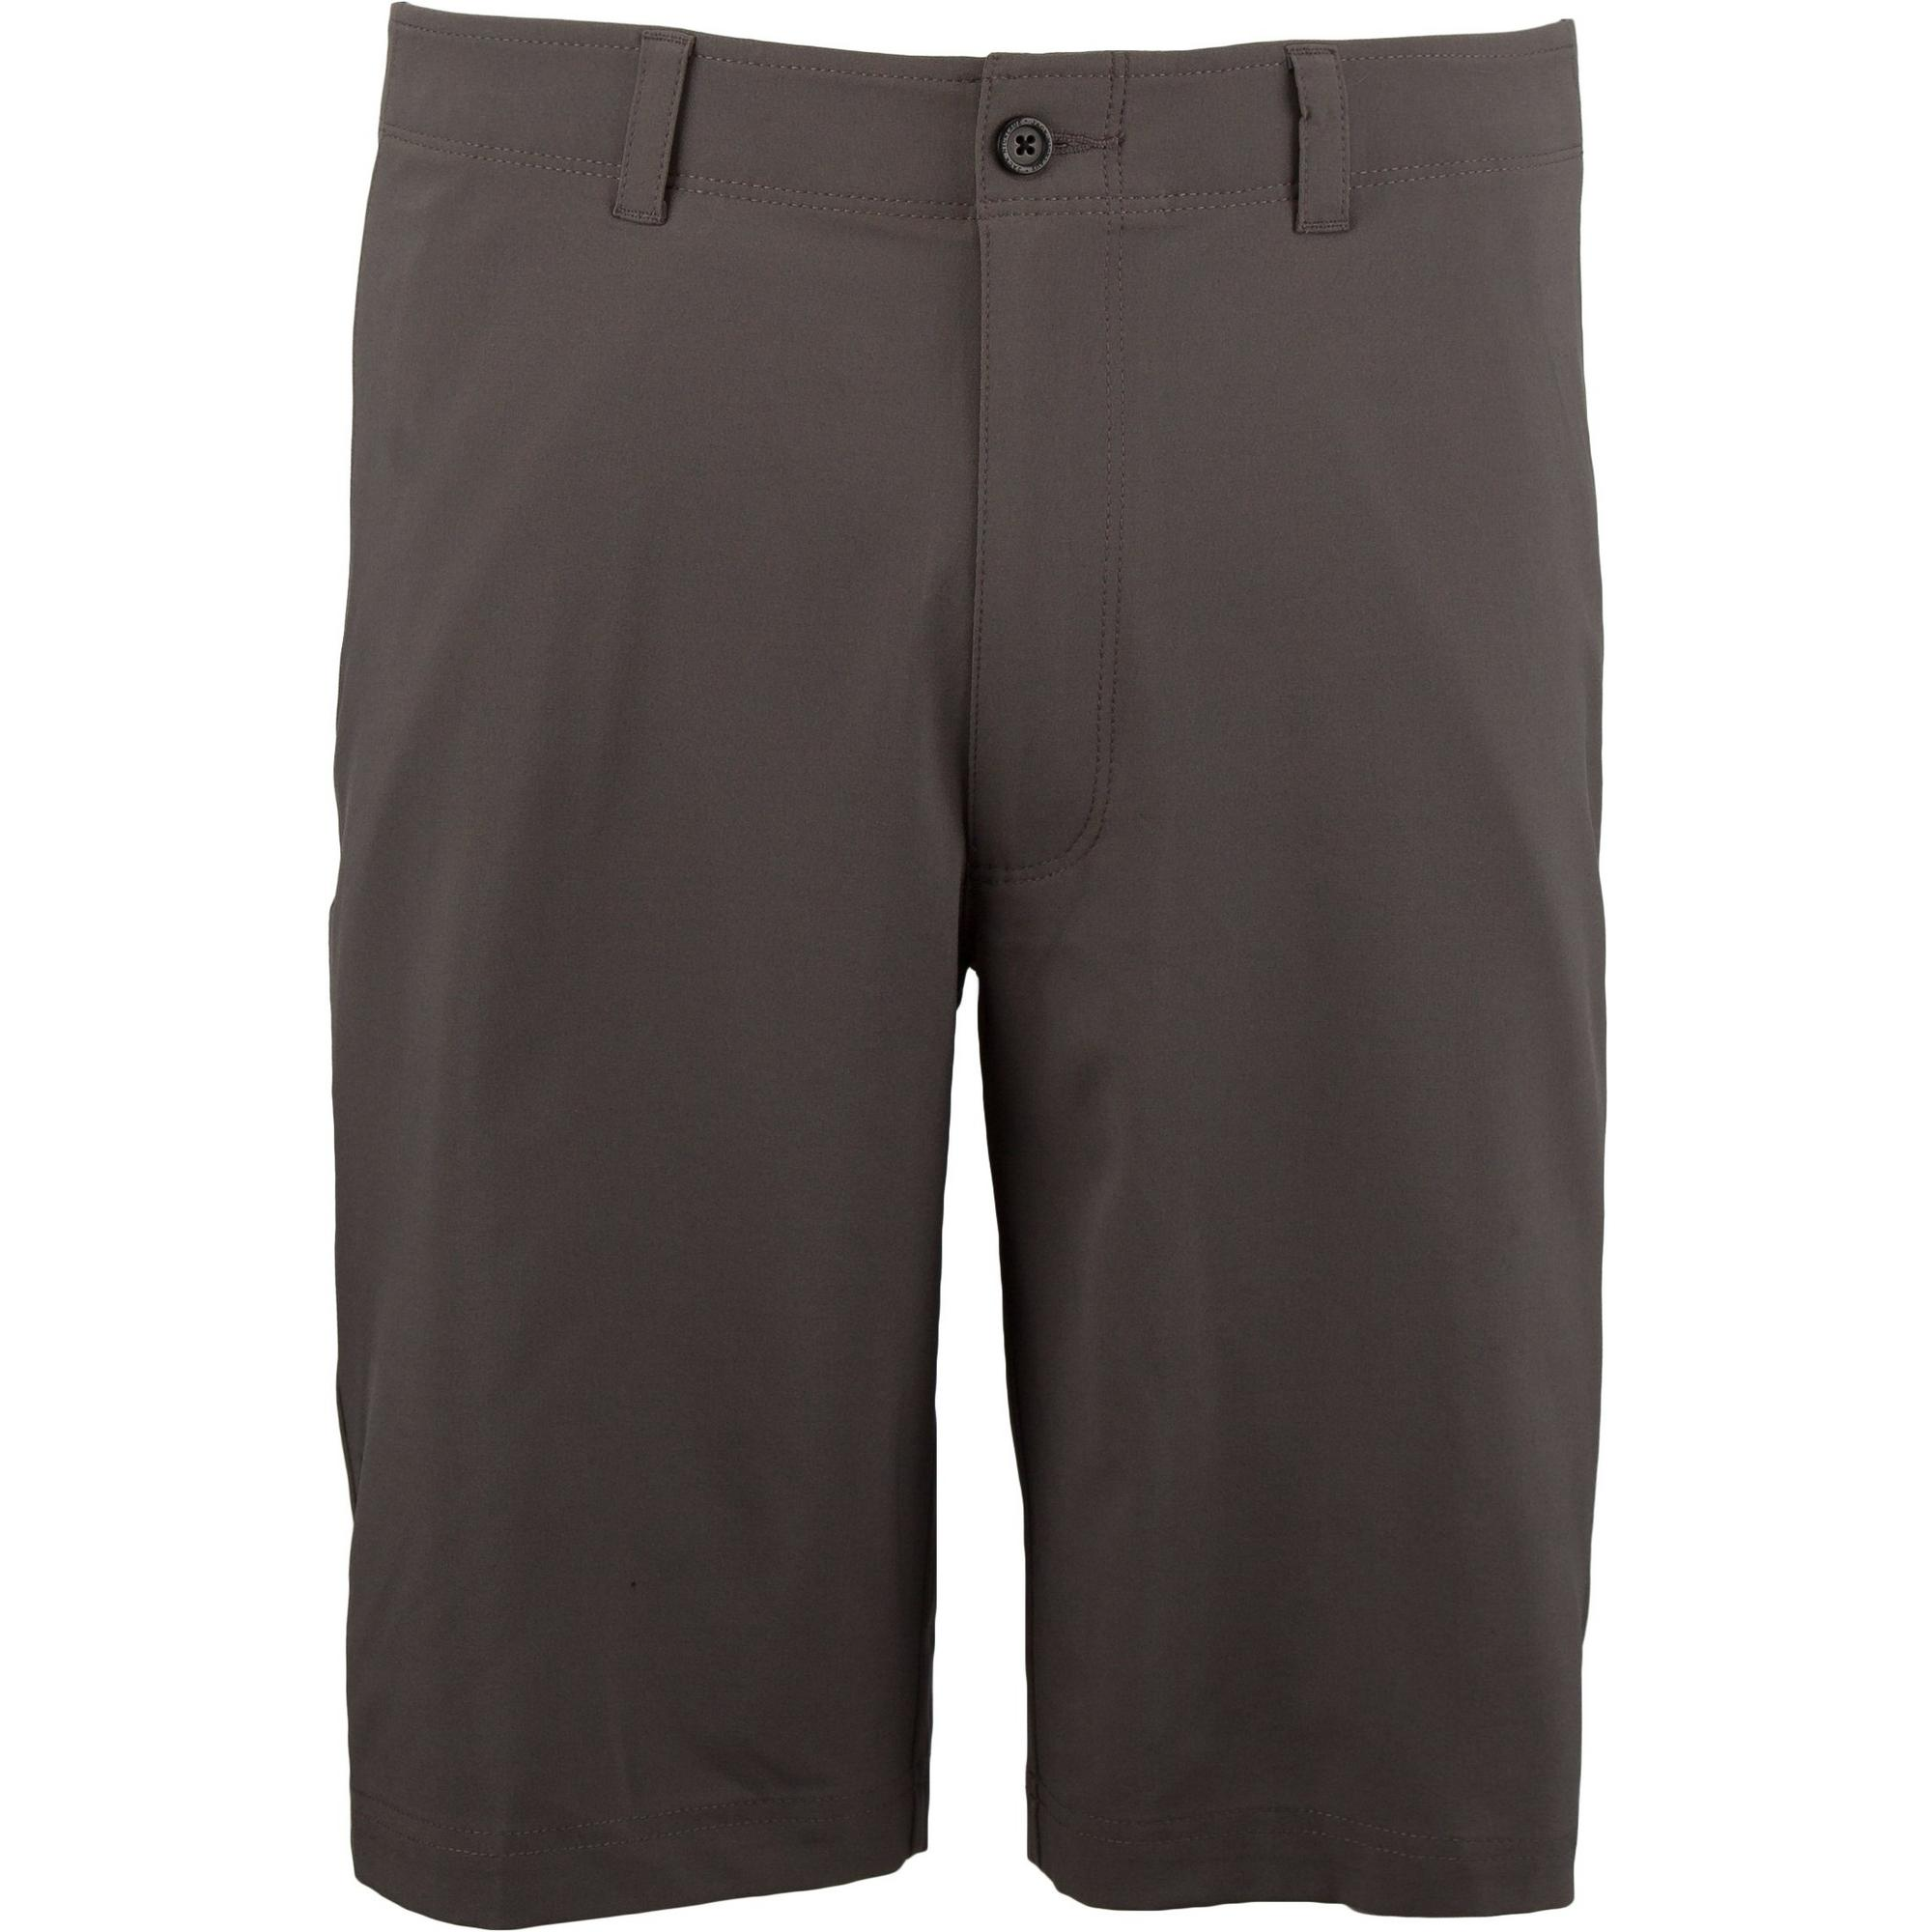 Men's Solid Short with Active Waistband